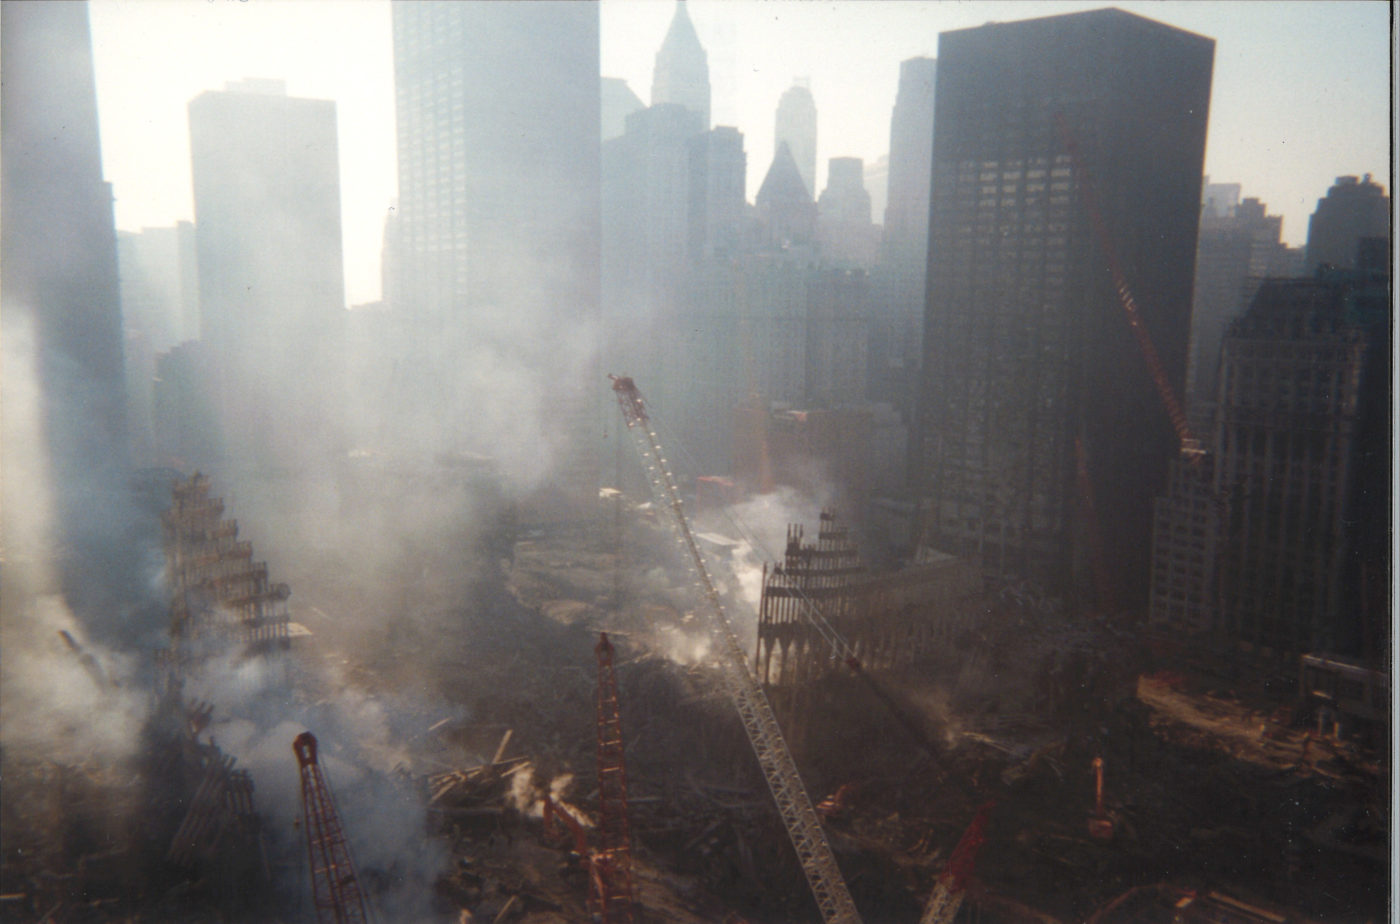 Aerial View of Exoskeleton of WTC 1 and 2 Surrounded by Smoke and Cranes